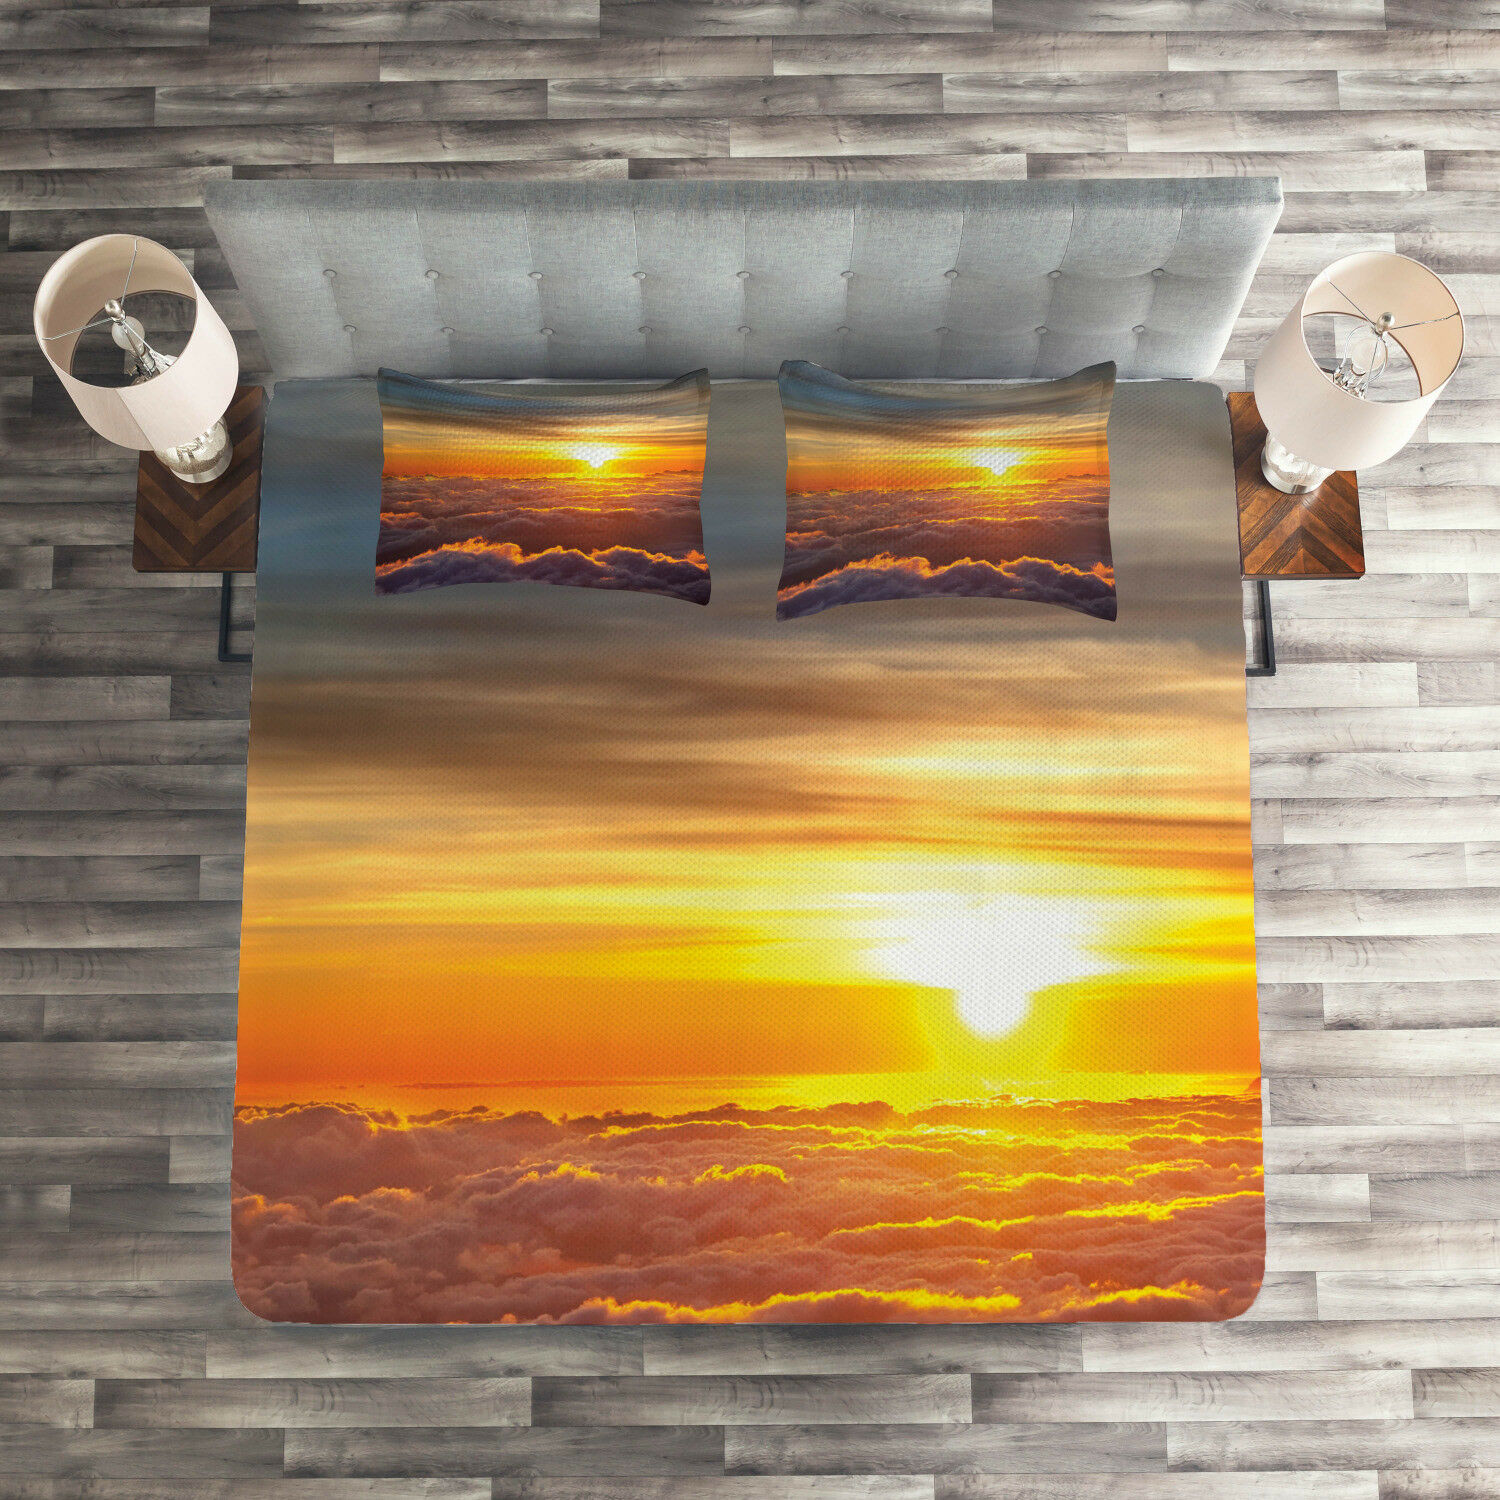 Nature Quilted Coverlet & Pillow Shams Set, Sunset Scene on Clouds Print